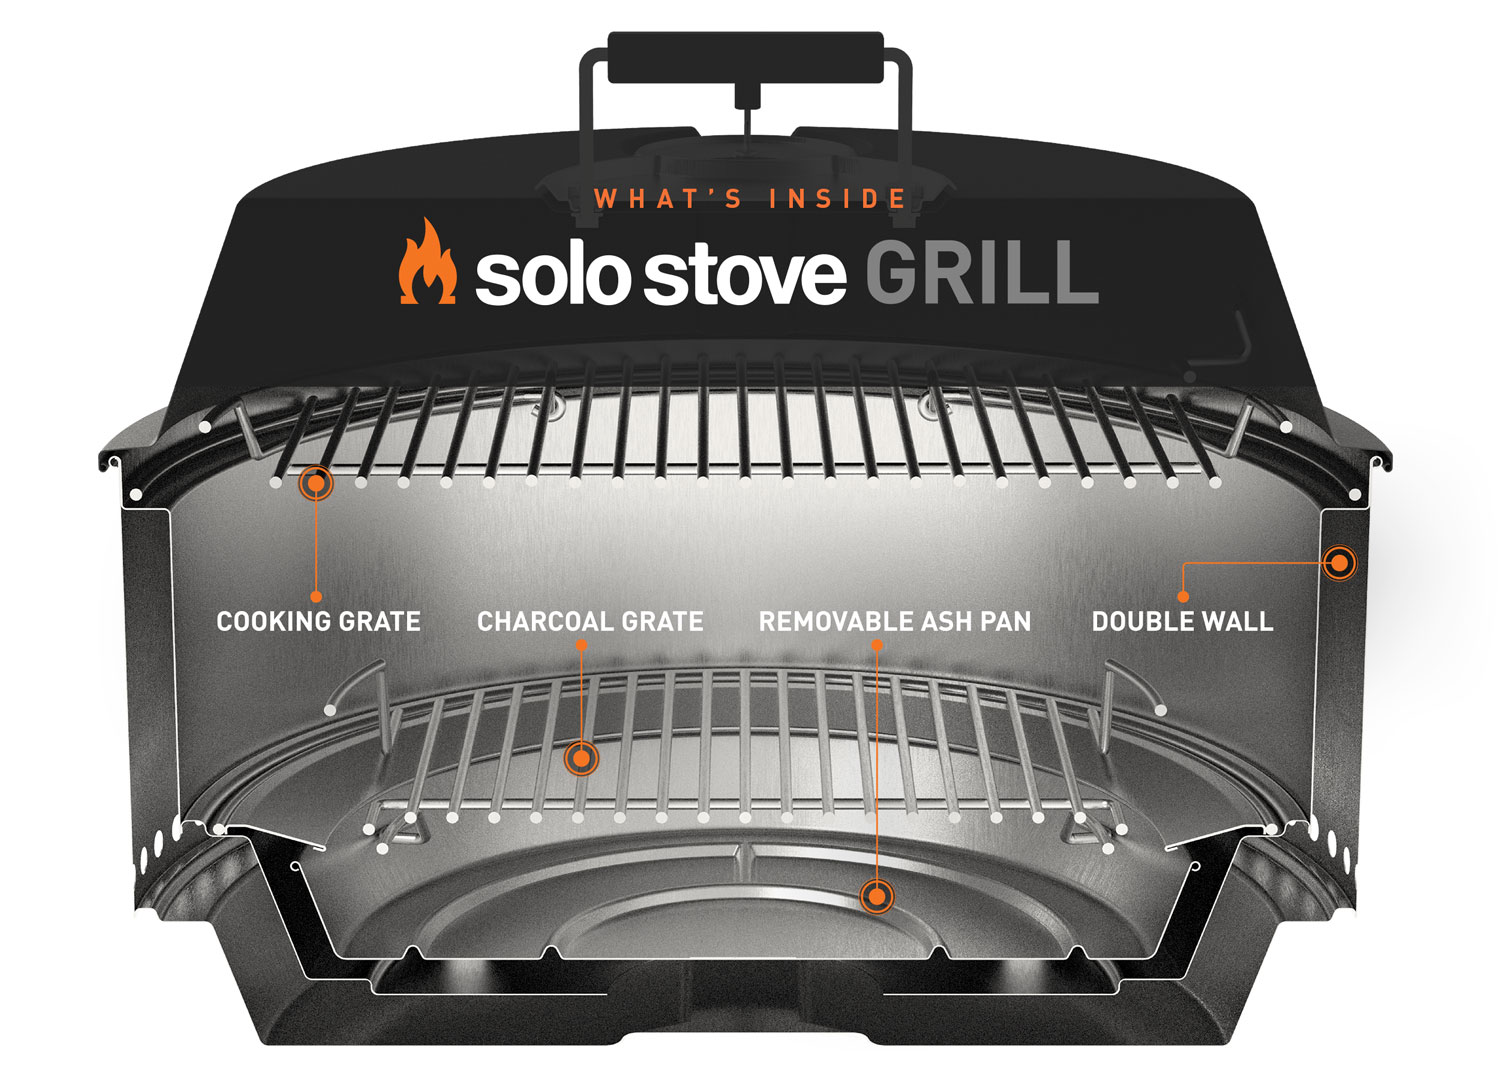 whats inside the grill image white